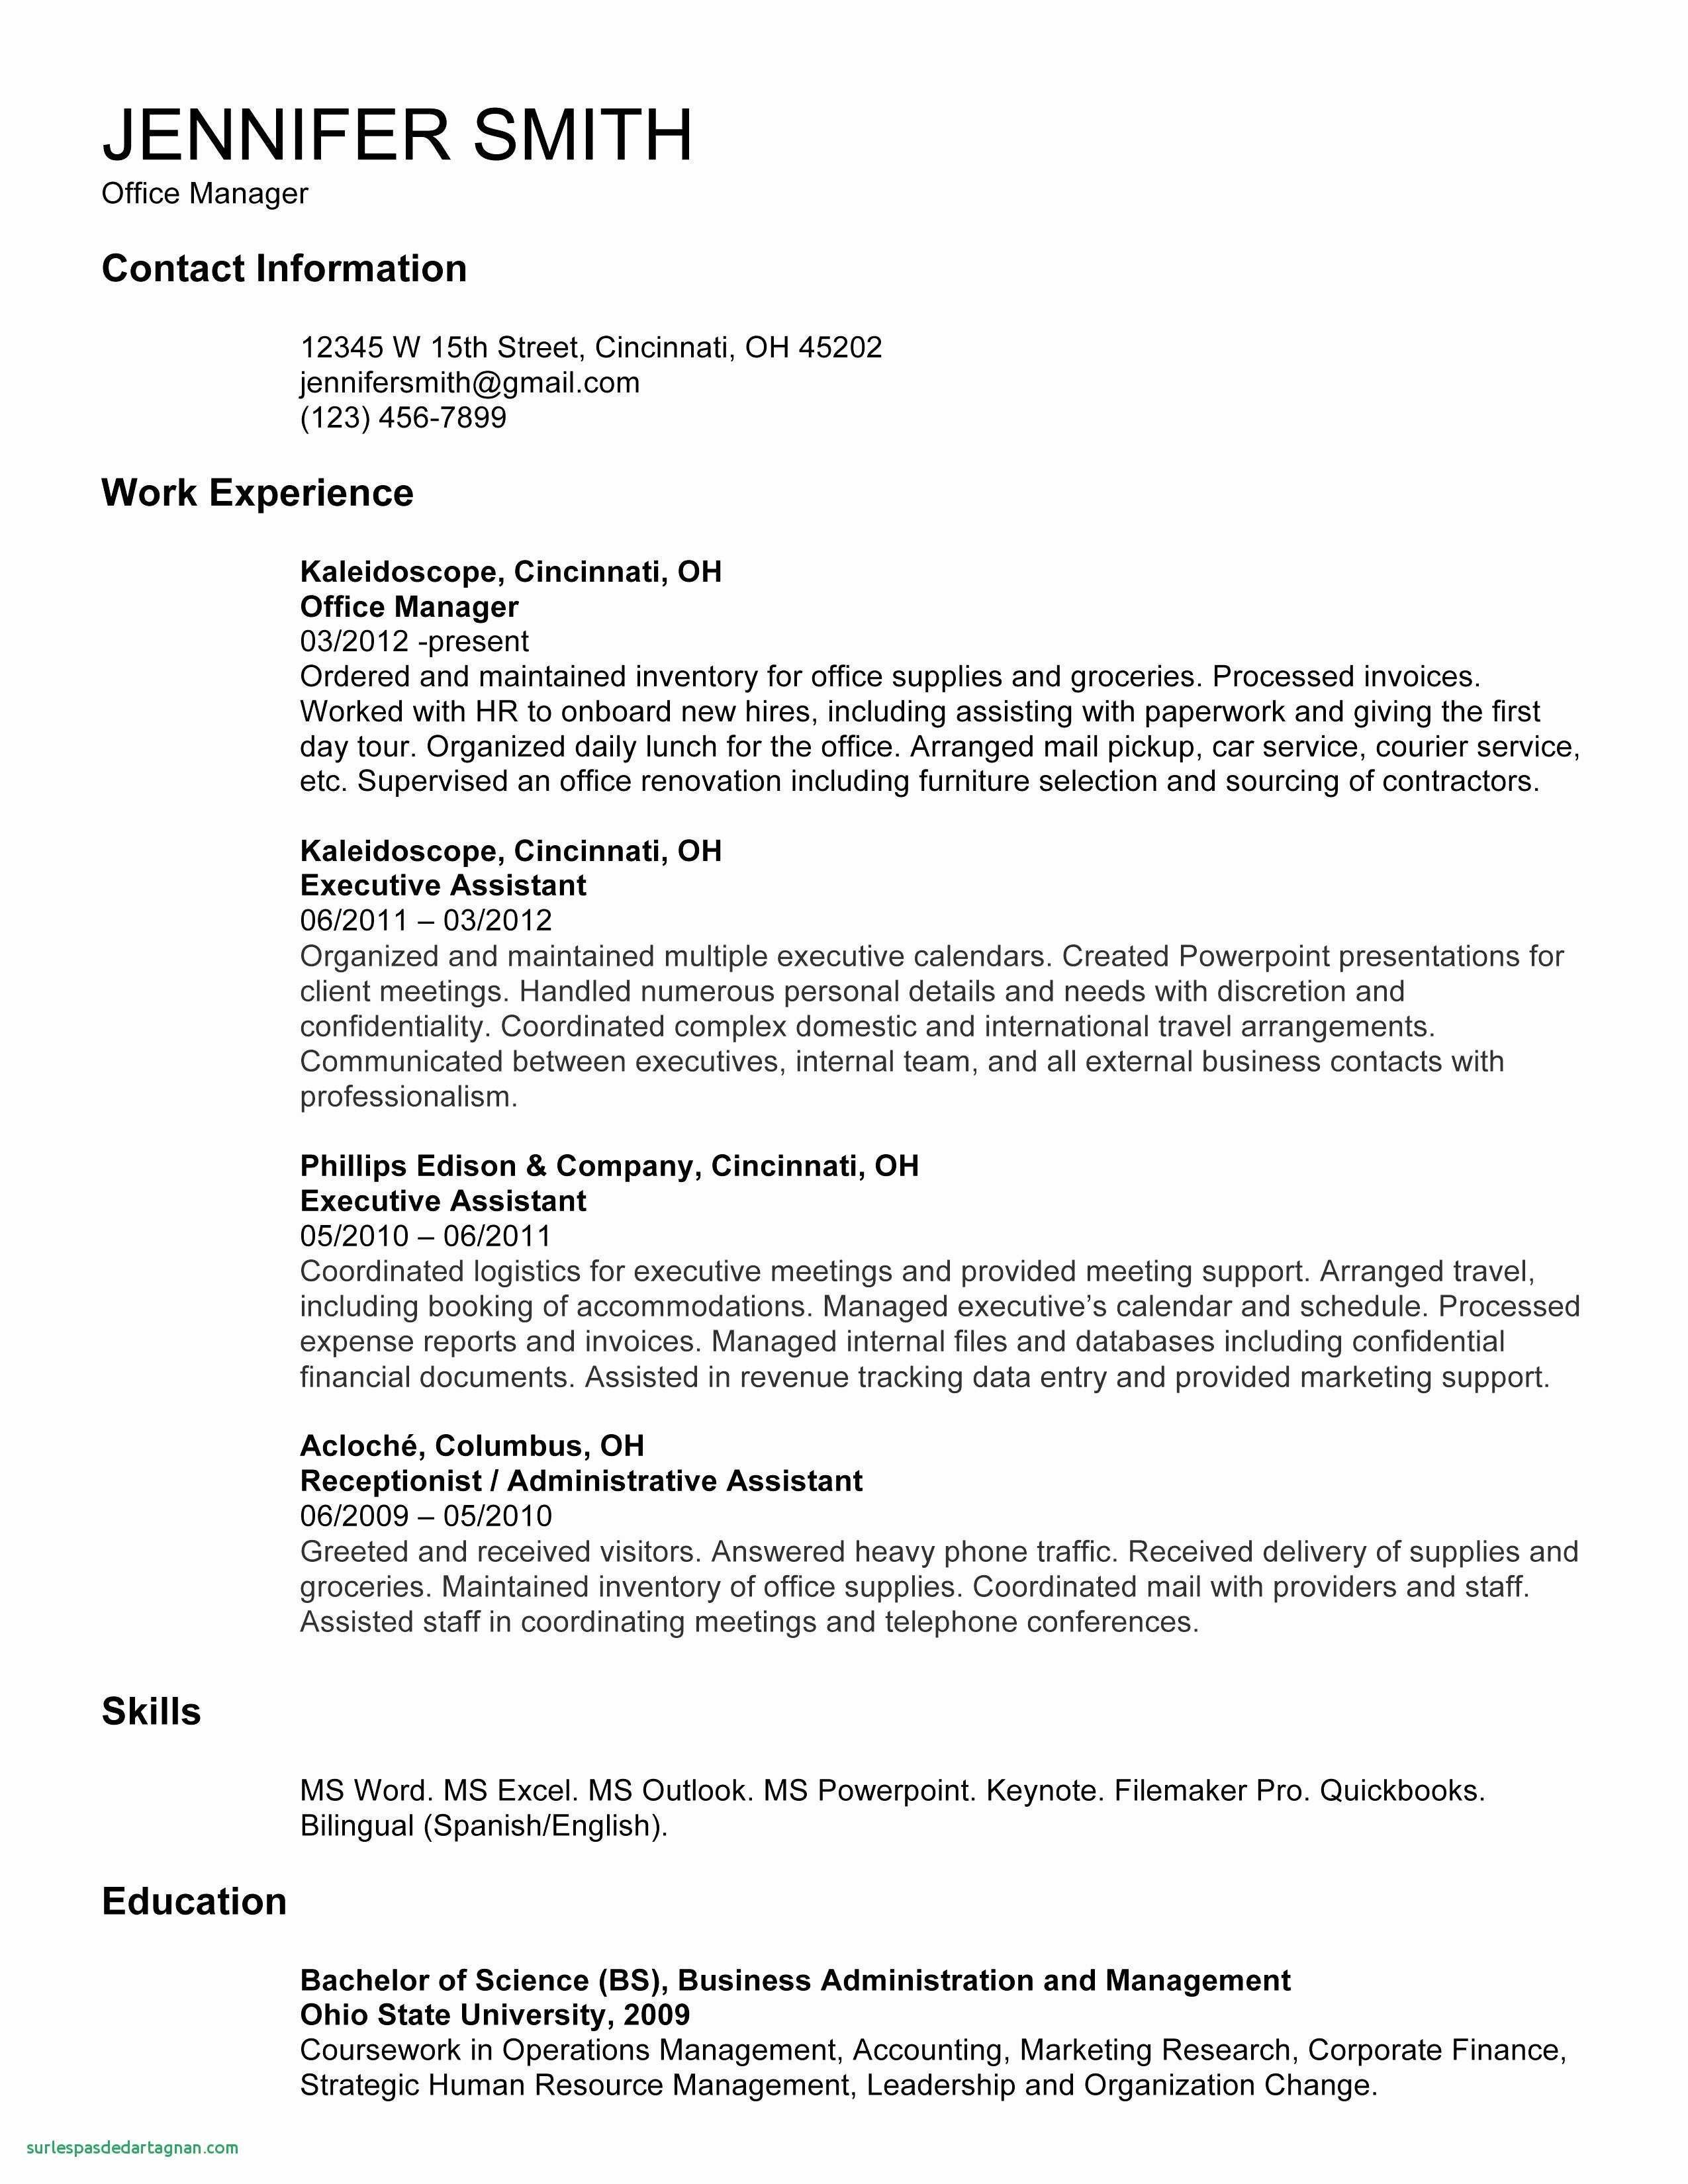 Resume Templates Word Free Download - Resume Template Download Free Unique ¢Ë†Å¡ Resume Template Download